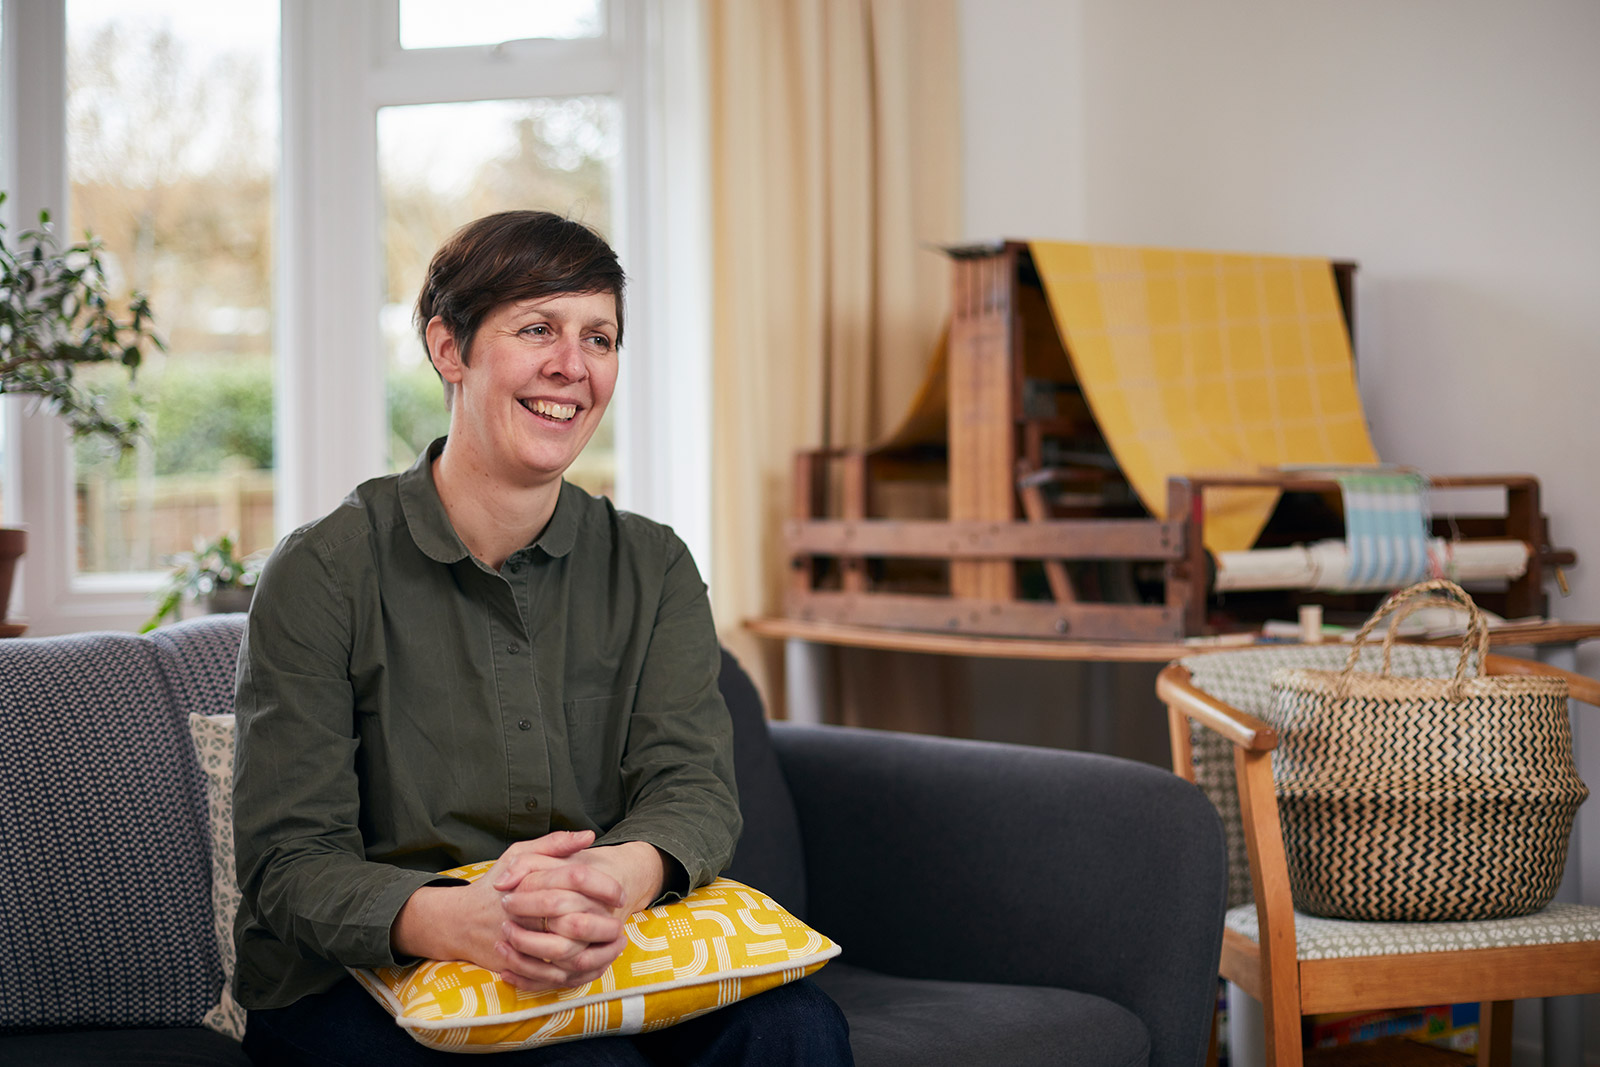 Kate Farley, Course Leader of BA Fashion and BA Textile Design sat in her home-studio in front of a loom